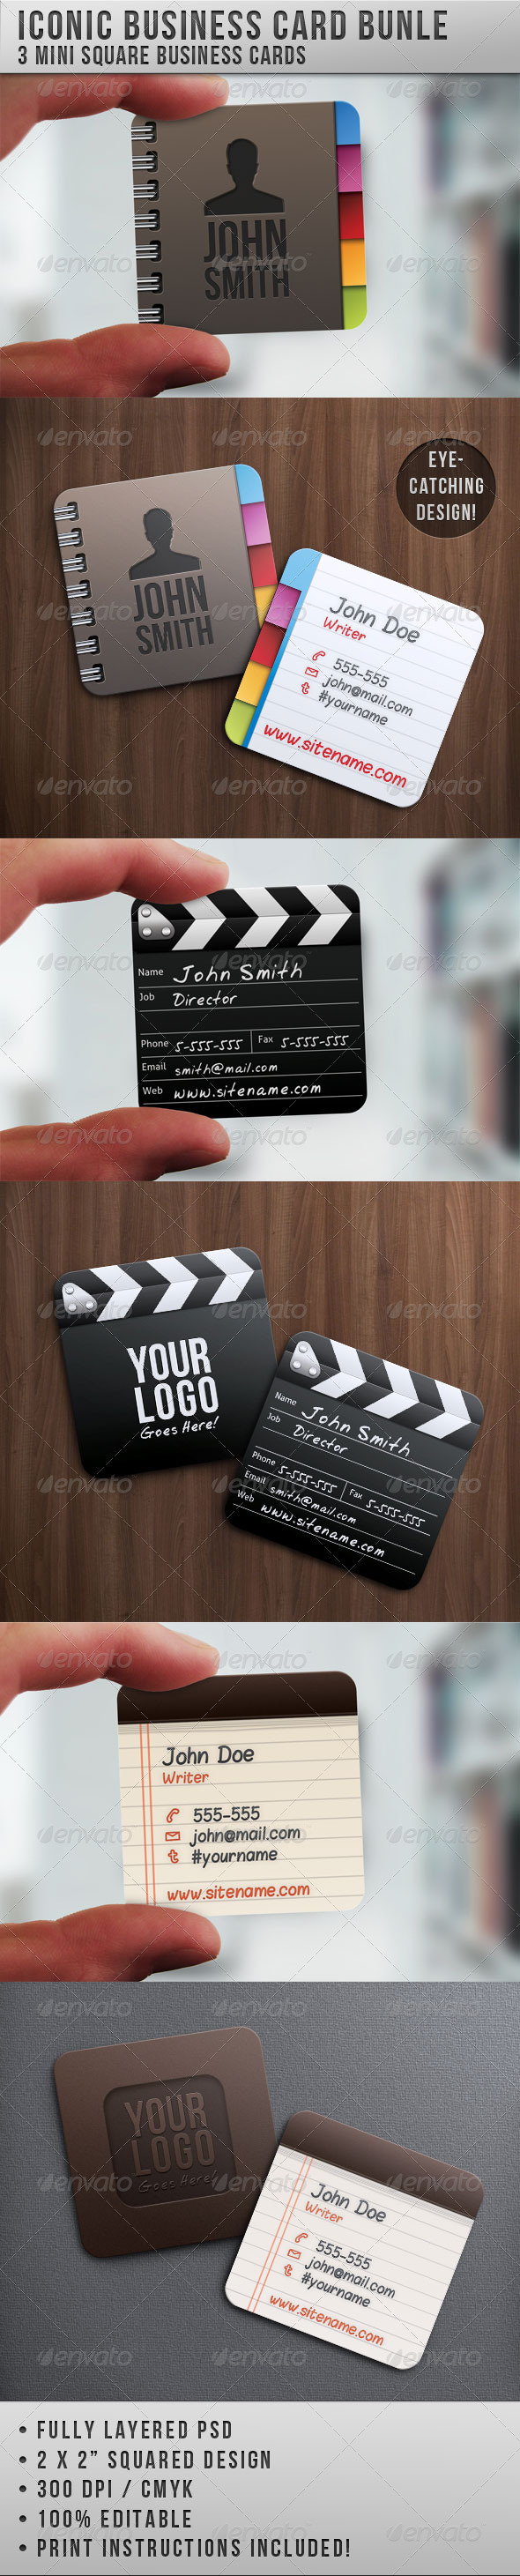 Iconic Business Card Bundle - Creative Business Cards